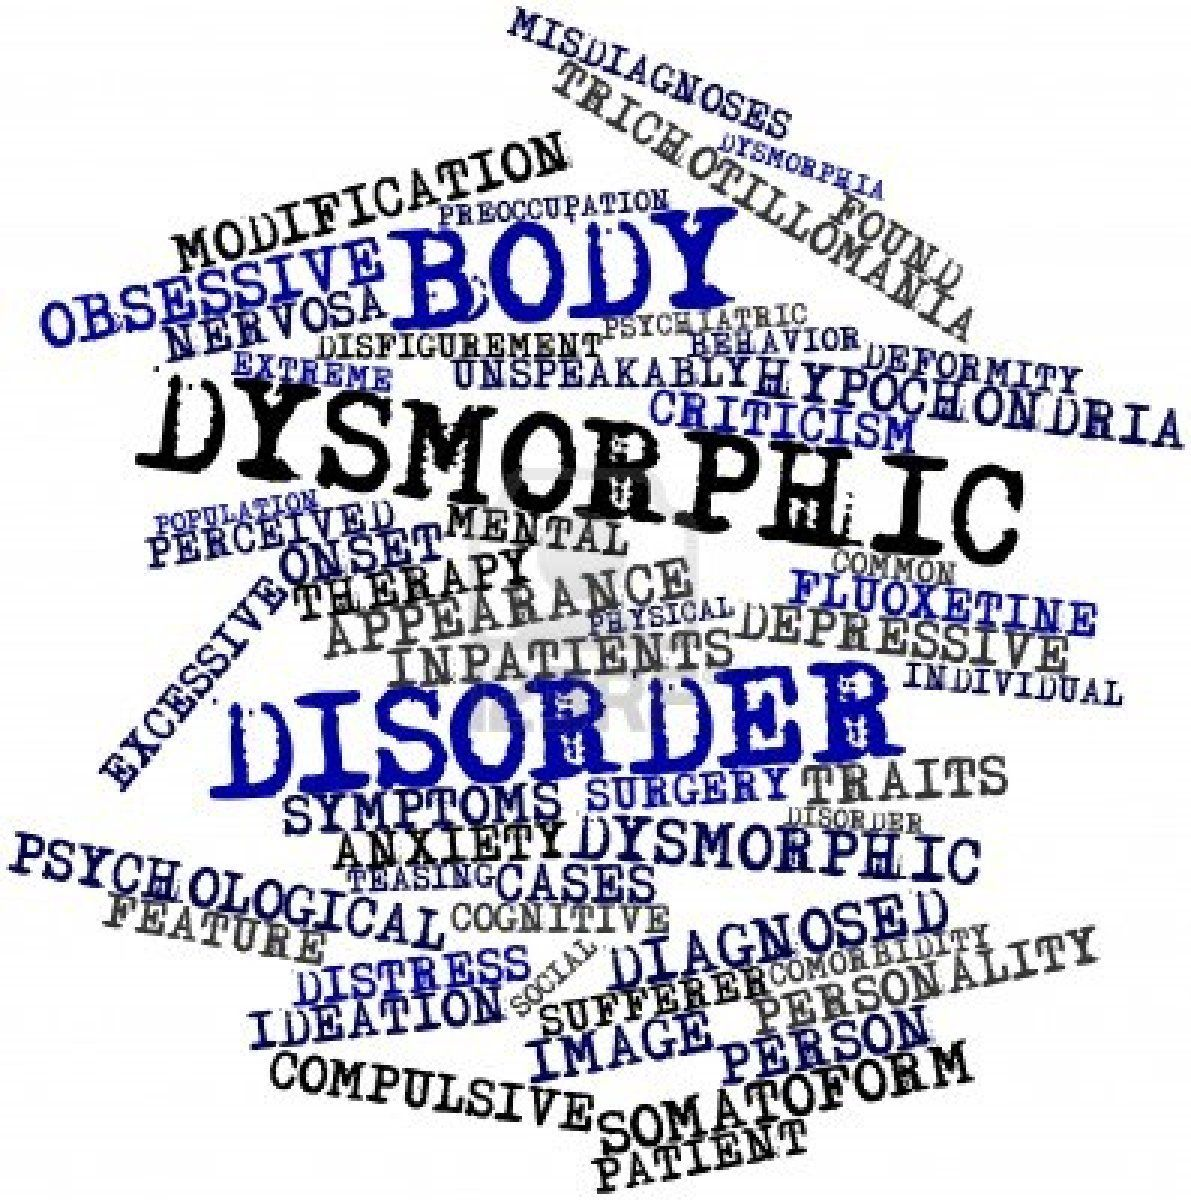 body dysmorphic disorder Body dysmorphic disorder should be diagnosed in depressed individuals if diagnostic criteria for body dysmorphic disorder is met anxiety disorders social anxiety and avoidance are common in body dysmorphic disorder.